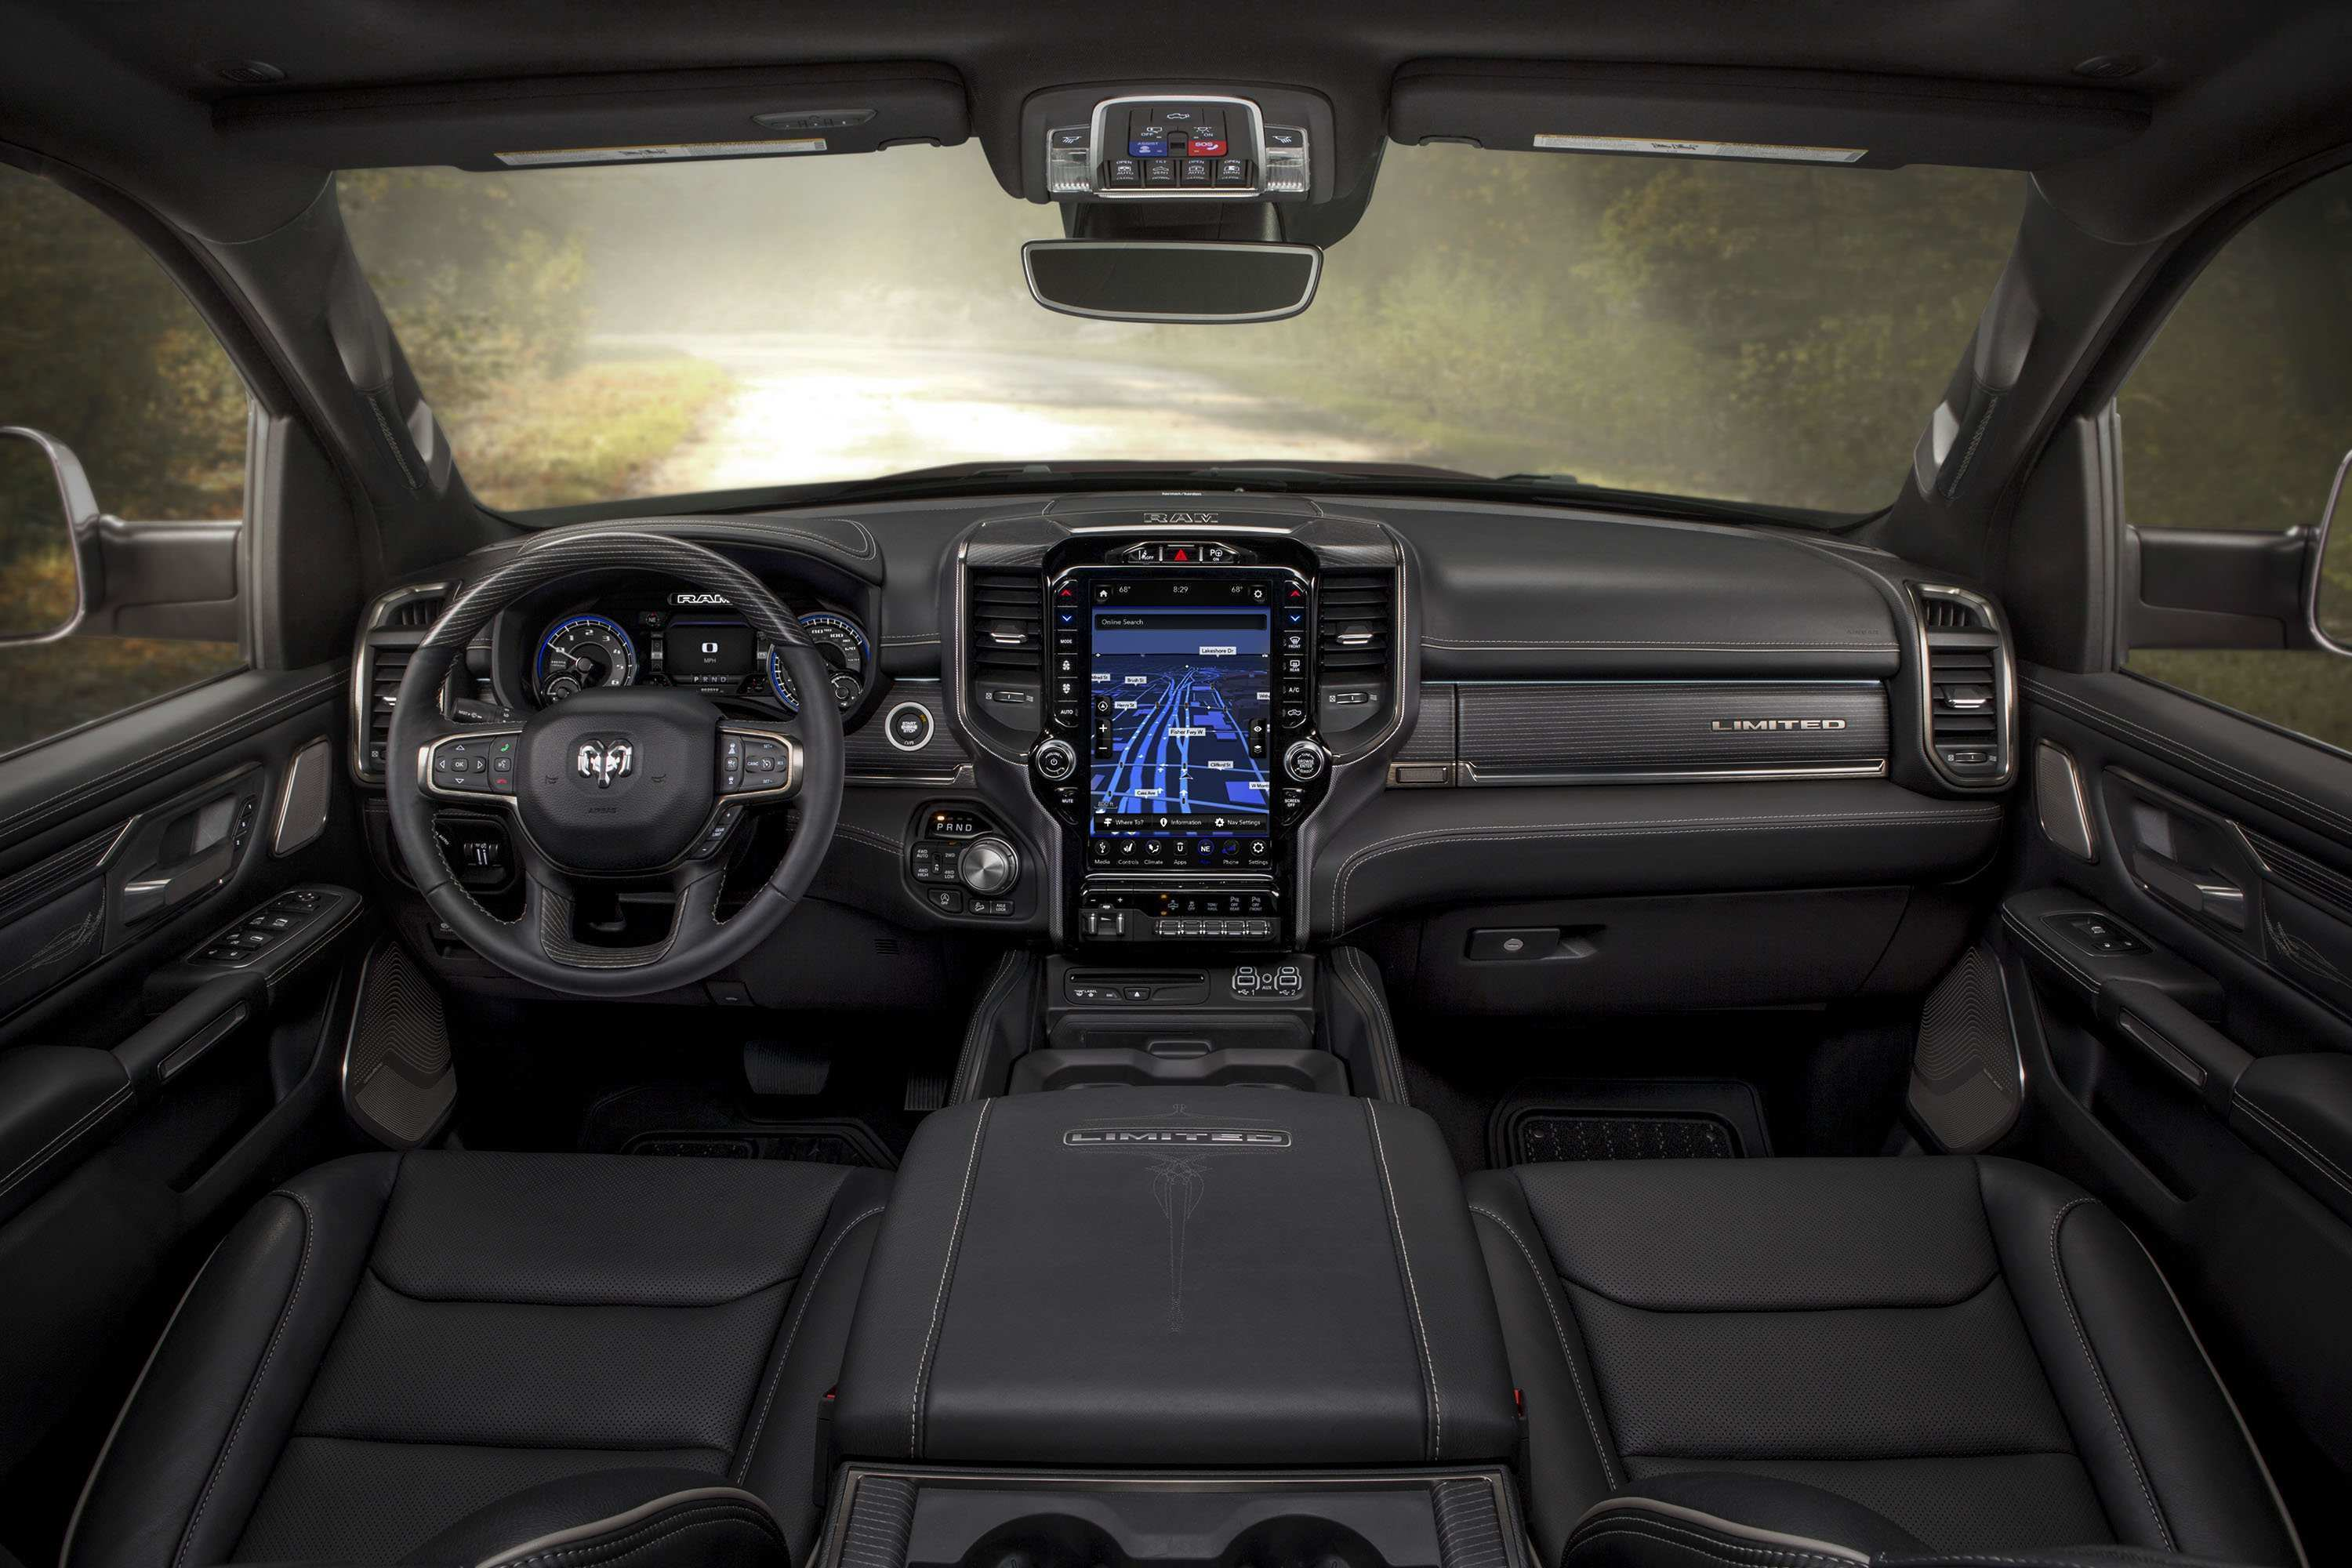 39 Gallery of 2020 Dodge Ram Pickup Research New for 2020 Dodge Ram Pickup